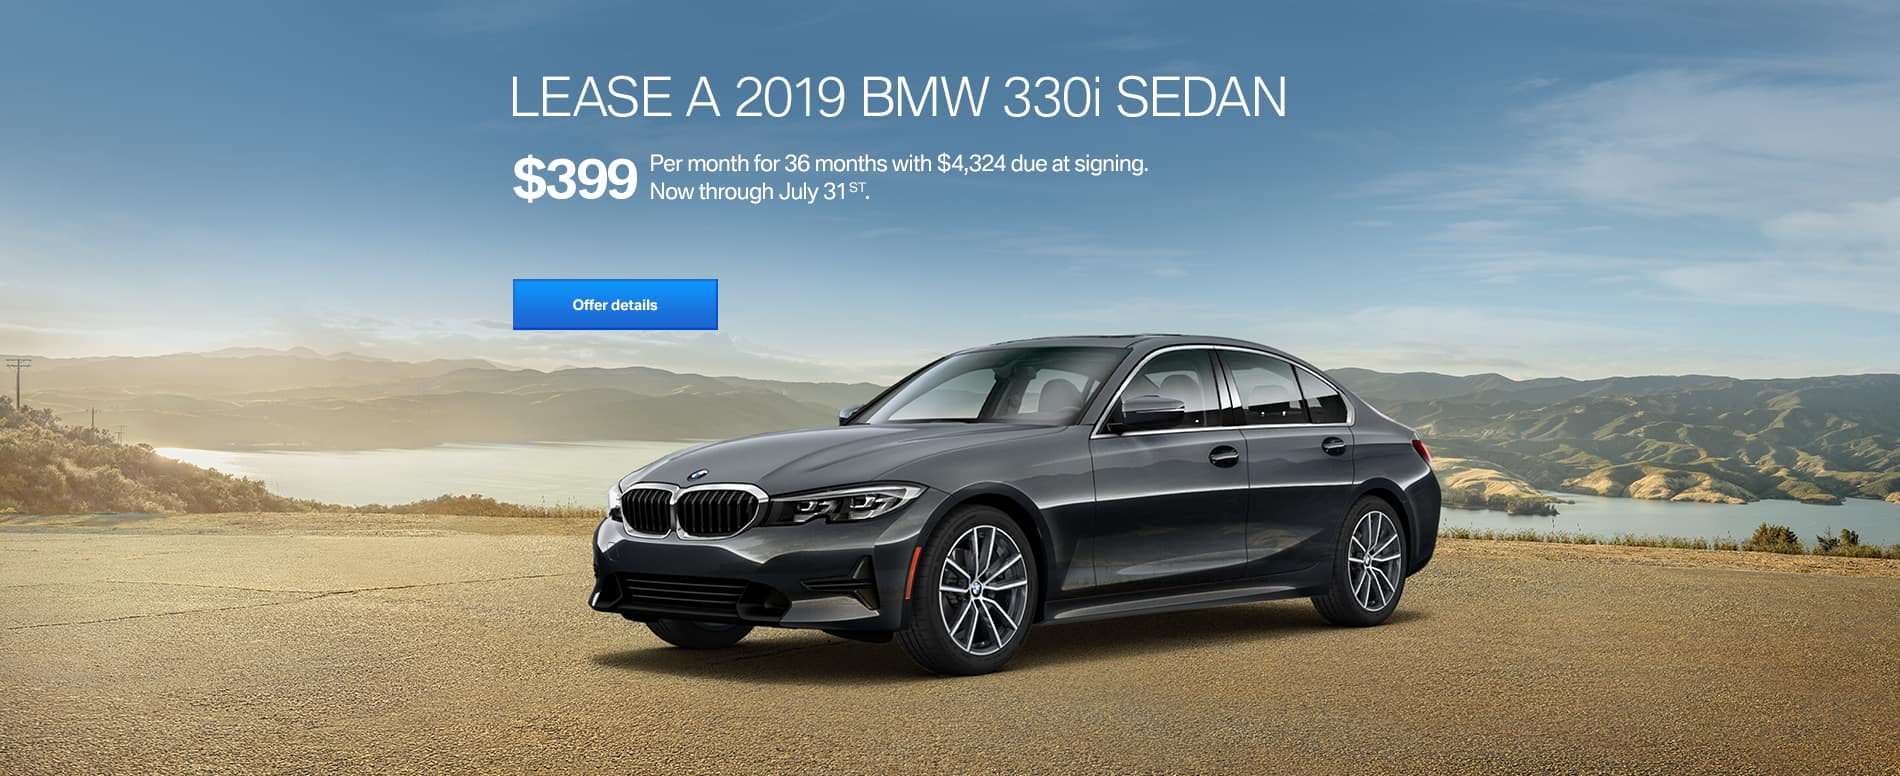 Bmw Of Escondido Luxury Automotive Dealer Near San Marcos And San